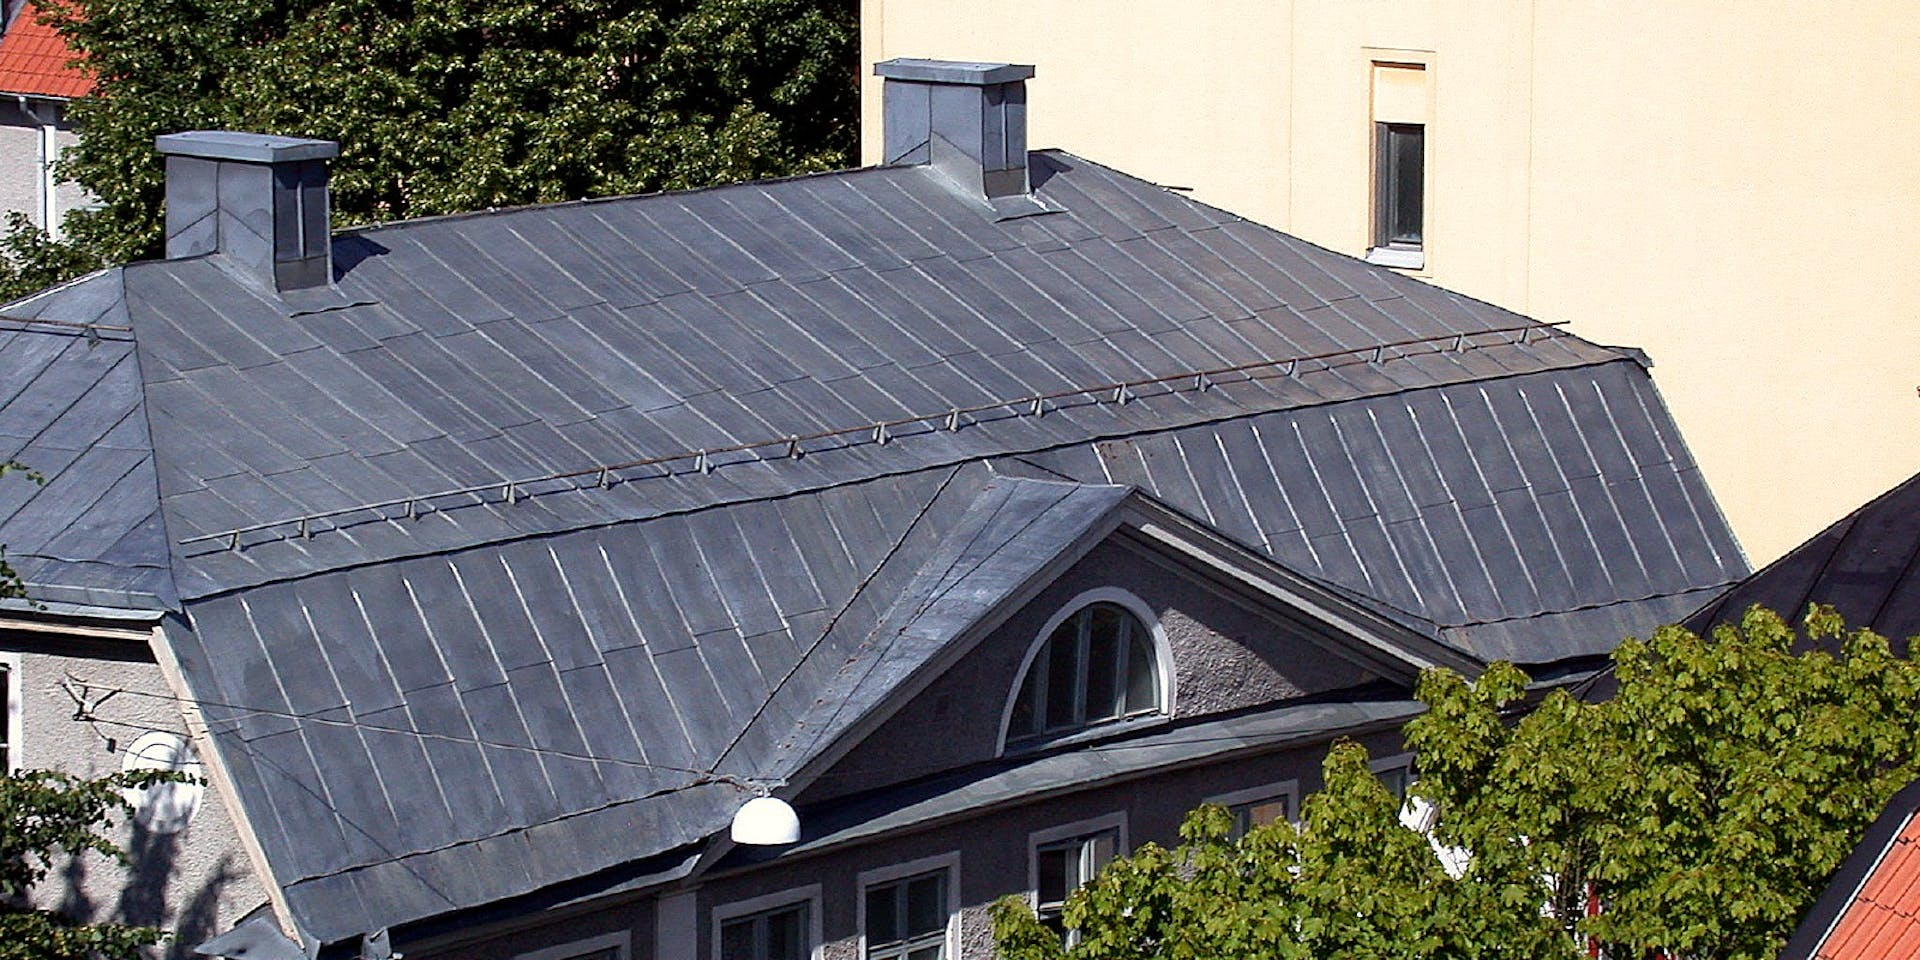 Steel Surfaces - Roofing & Cladding Body Image